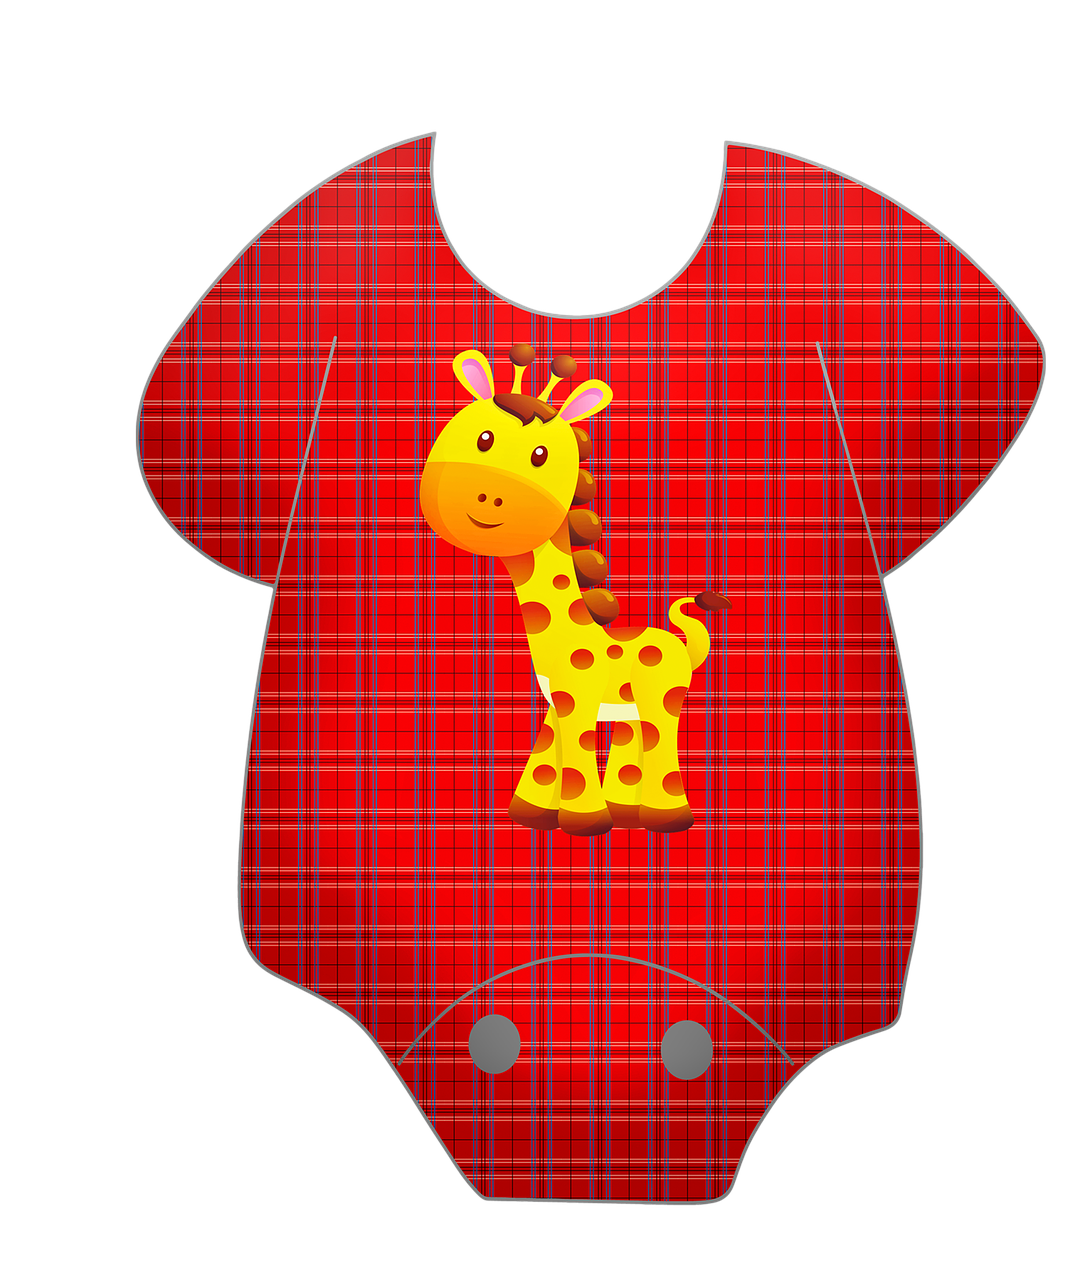 baby-clothes-3739525_1280